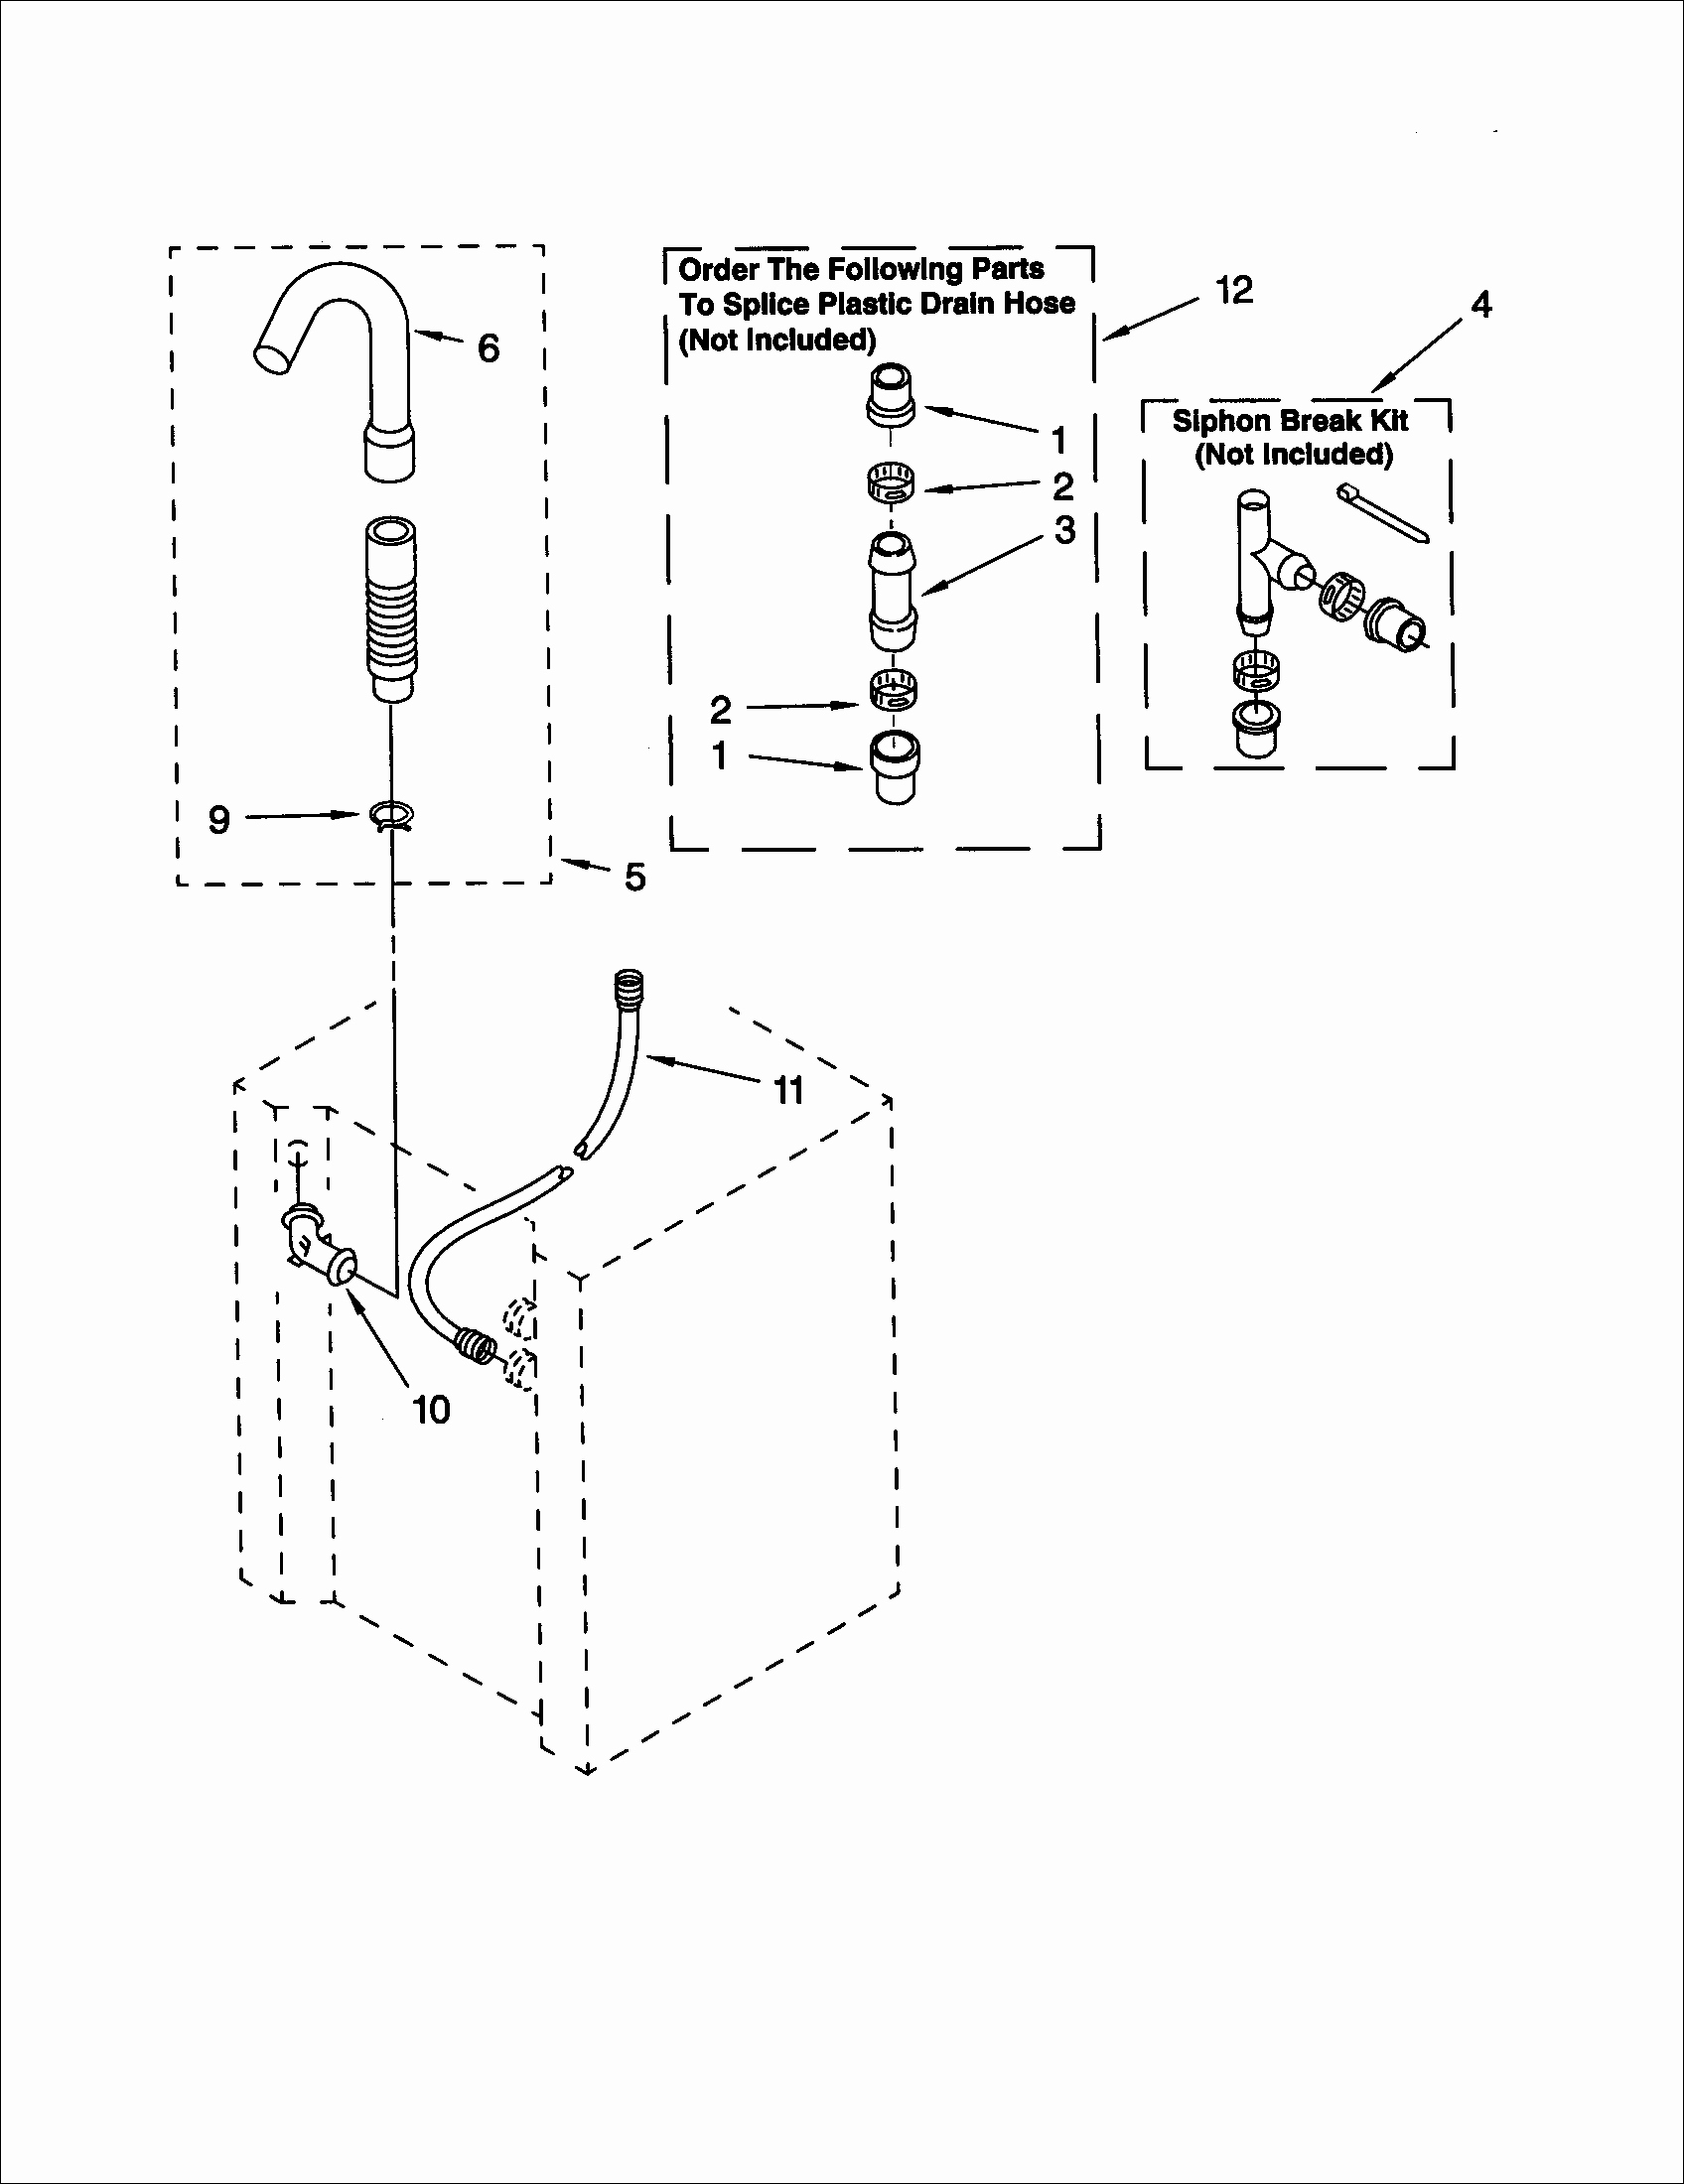 whirlpool duet dryer heating element wiring diagram Download-Whirlpool Duet Dryer Heating Element Wiring Diagram Awesome Whirlpool Model Lte6234dt2 Laundry Centers Bos Genuine Parts 1-g